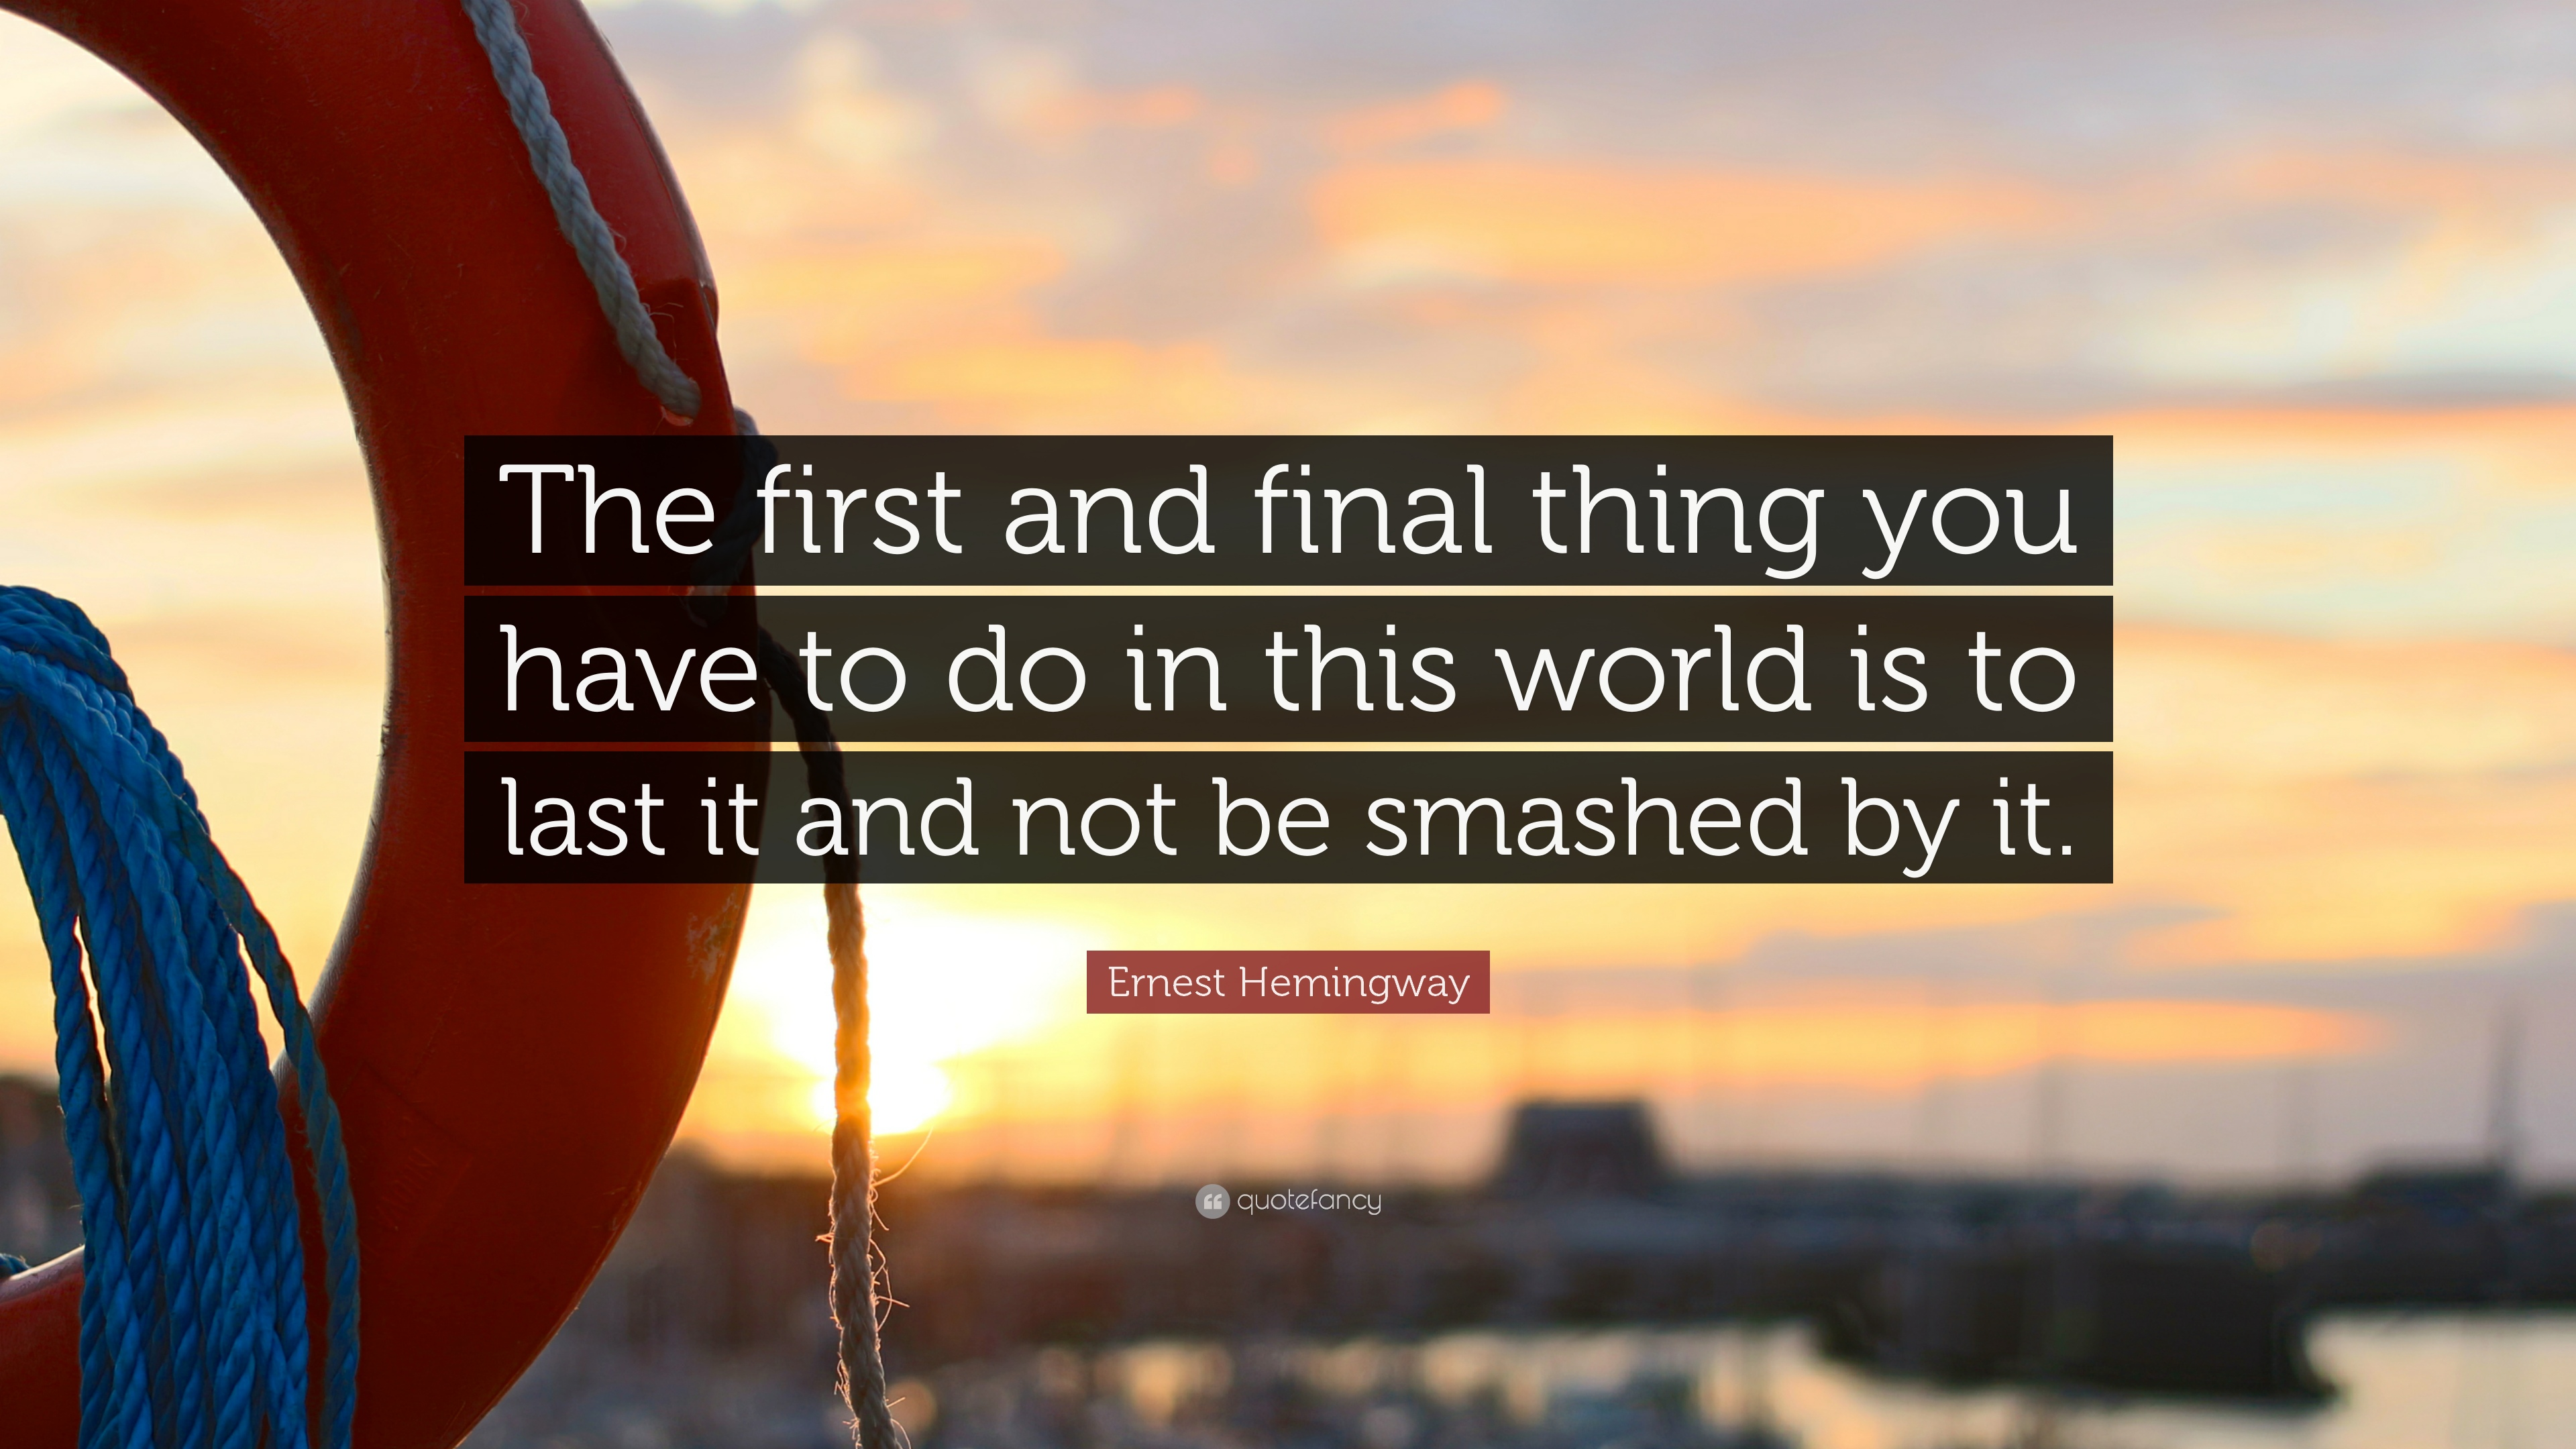 Ernest Hemingway Quote The First And Final Thing You Have To Do In